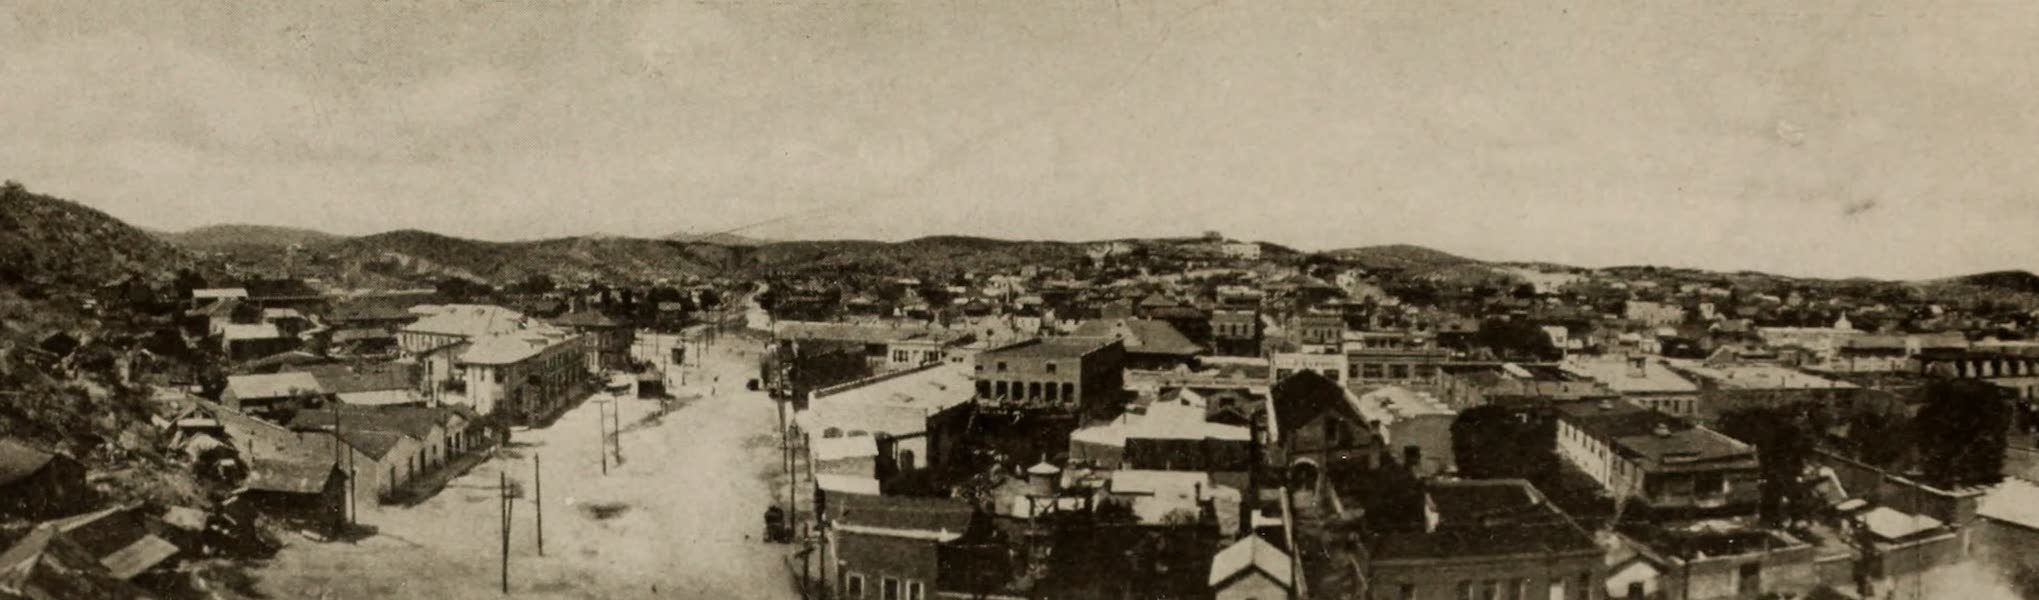 Arizona, The Wonderland - Nogales, Showing the Street that Divides the American from the Mexican Portion of the City (1917)